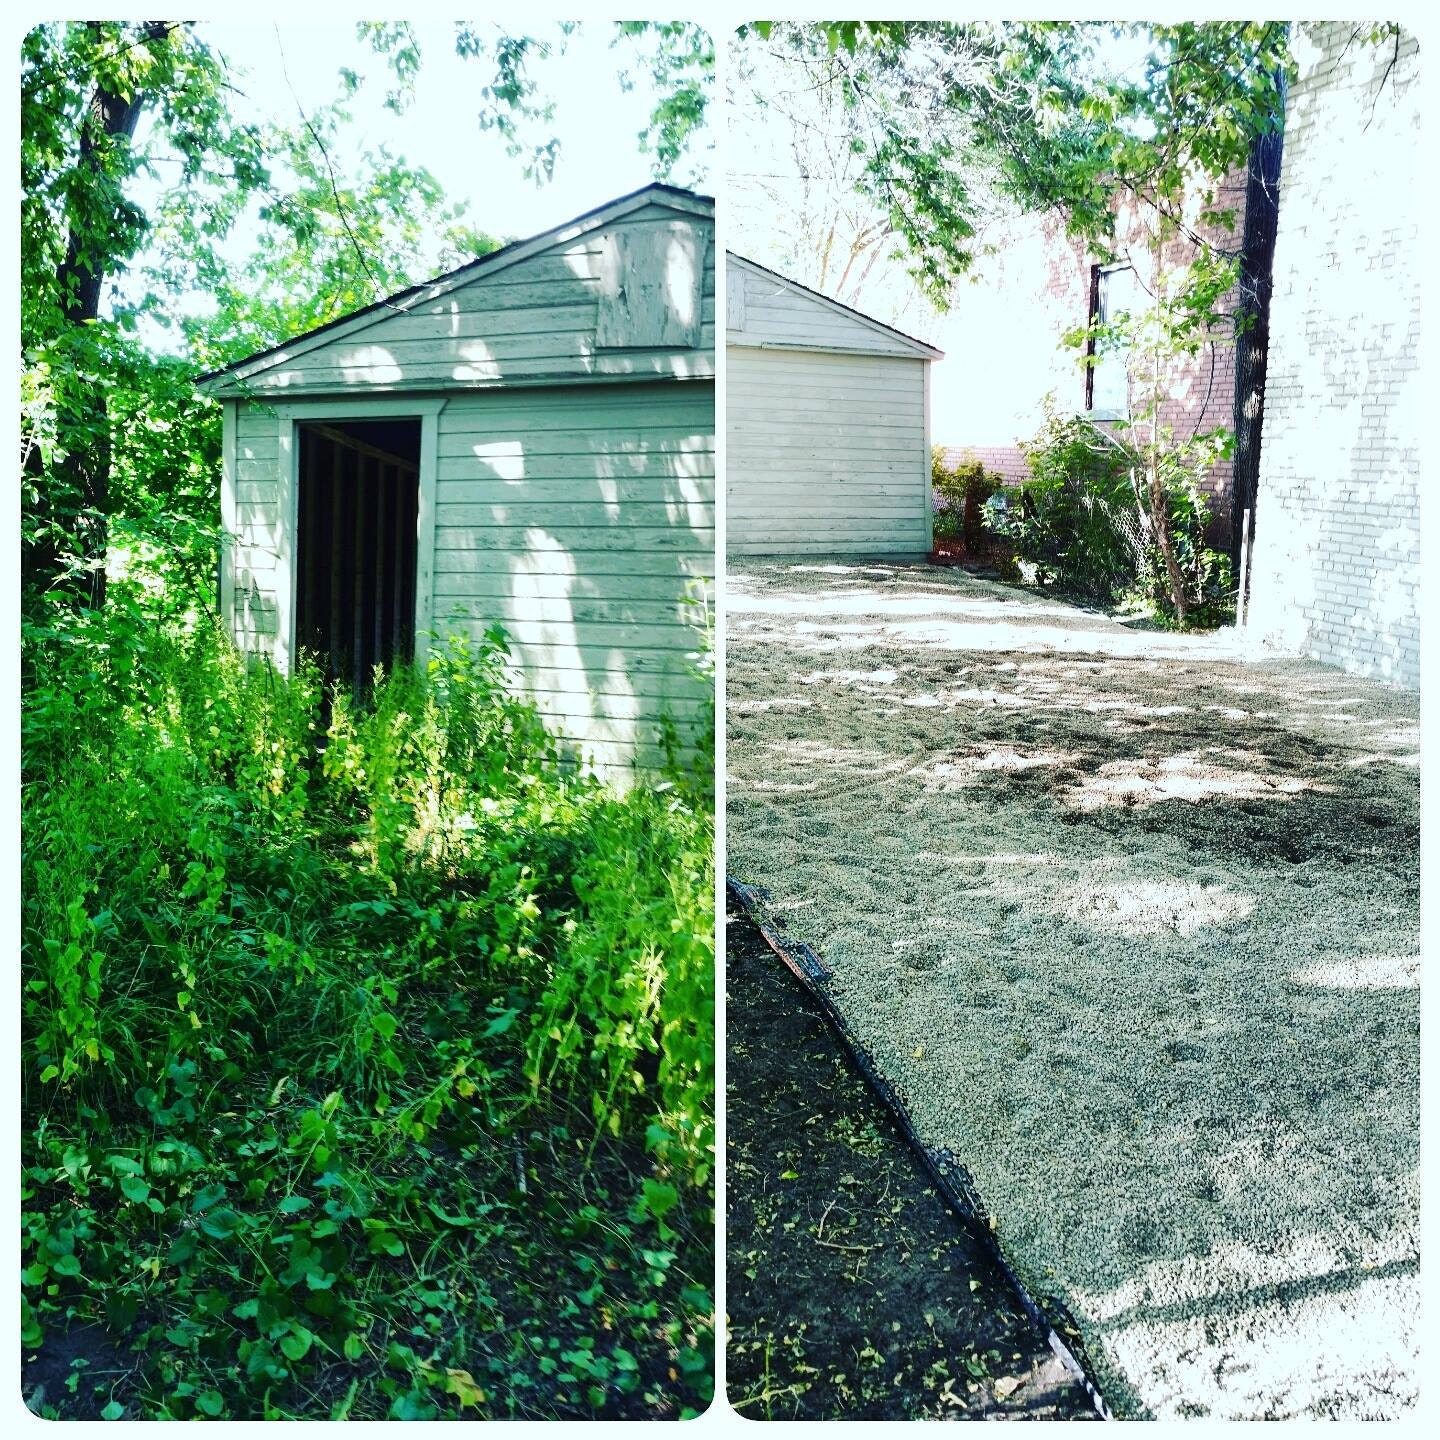 Before and after some back breaking yard work in Detroit